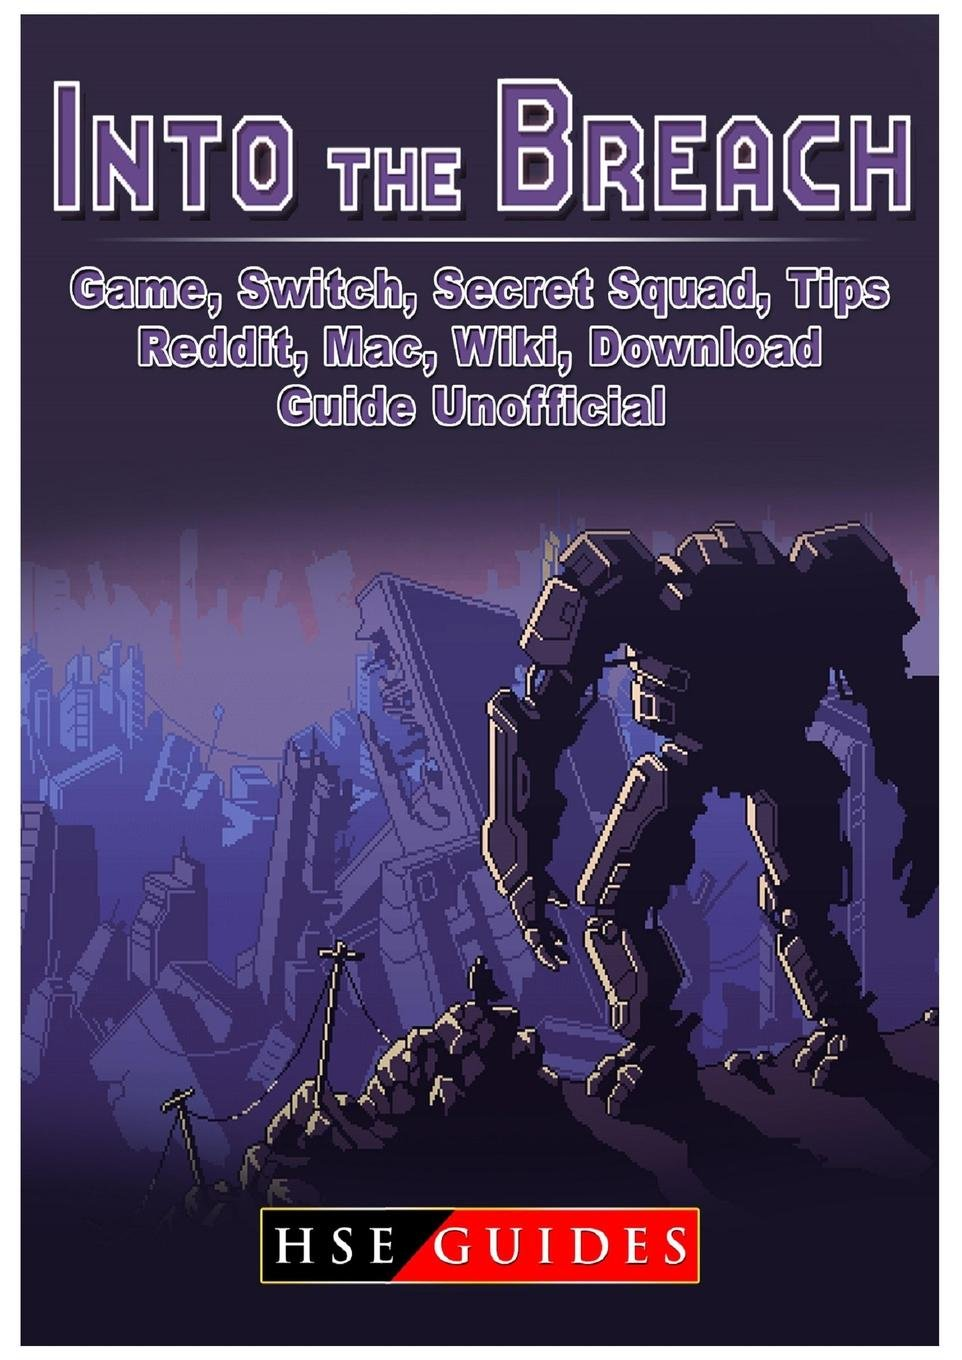 Into the Breach Game, Switch, Secret Squad, Tips, Reddit, Mac, Wiki